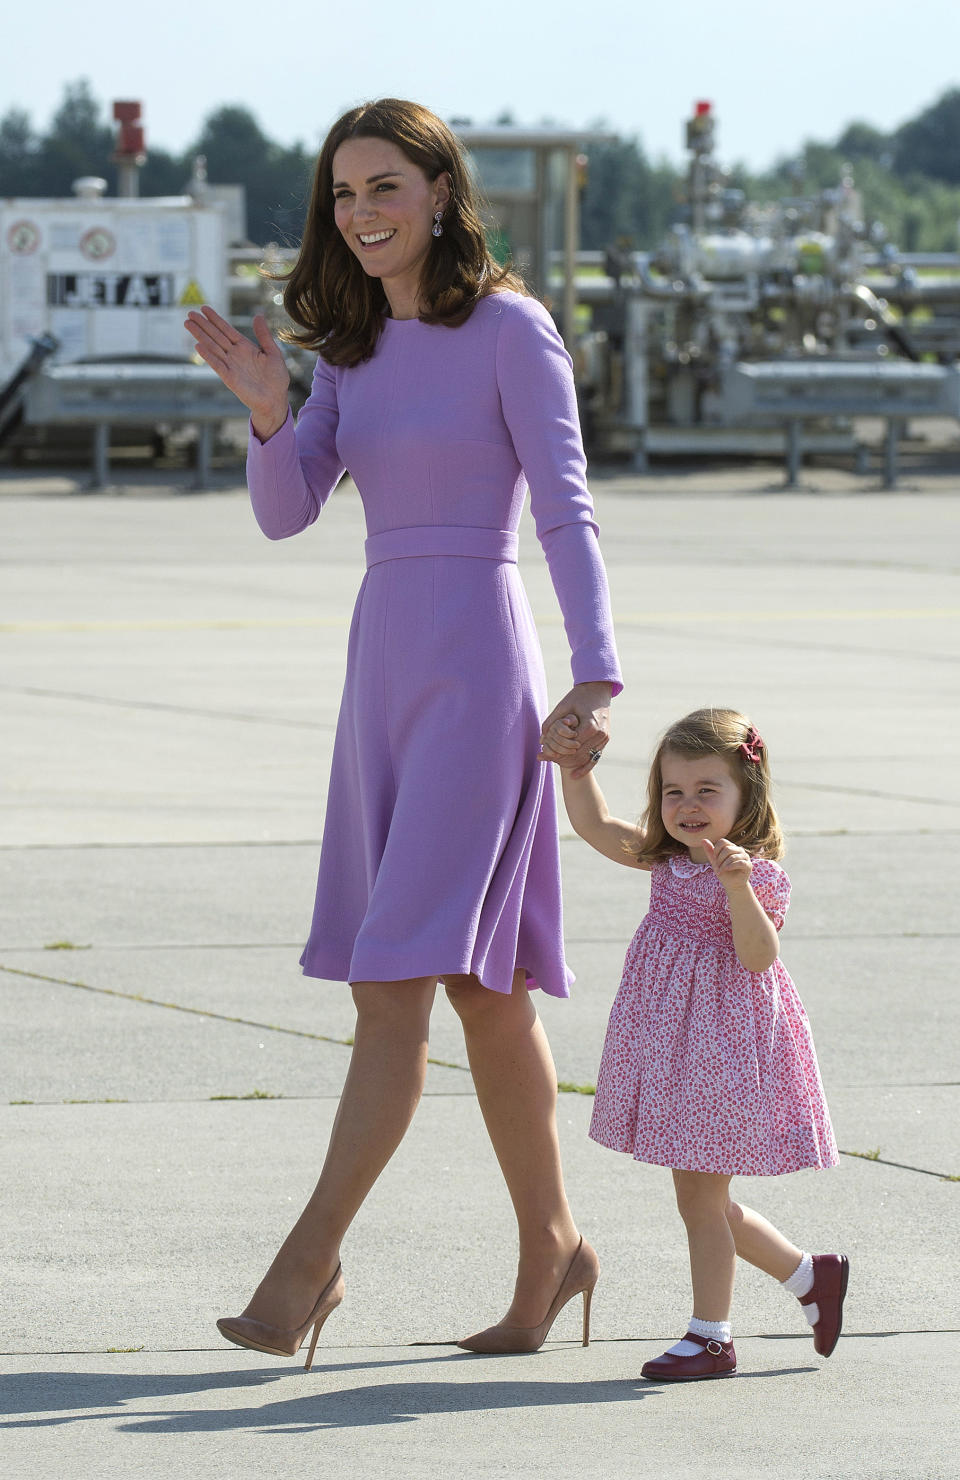 Like mother, like daughter. Source: Getty